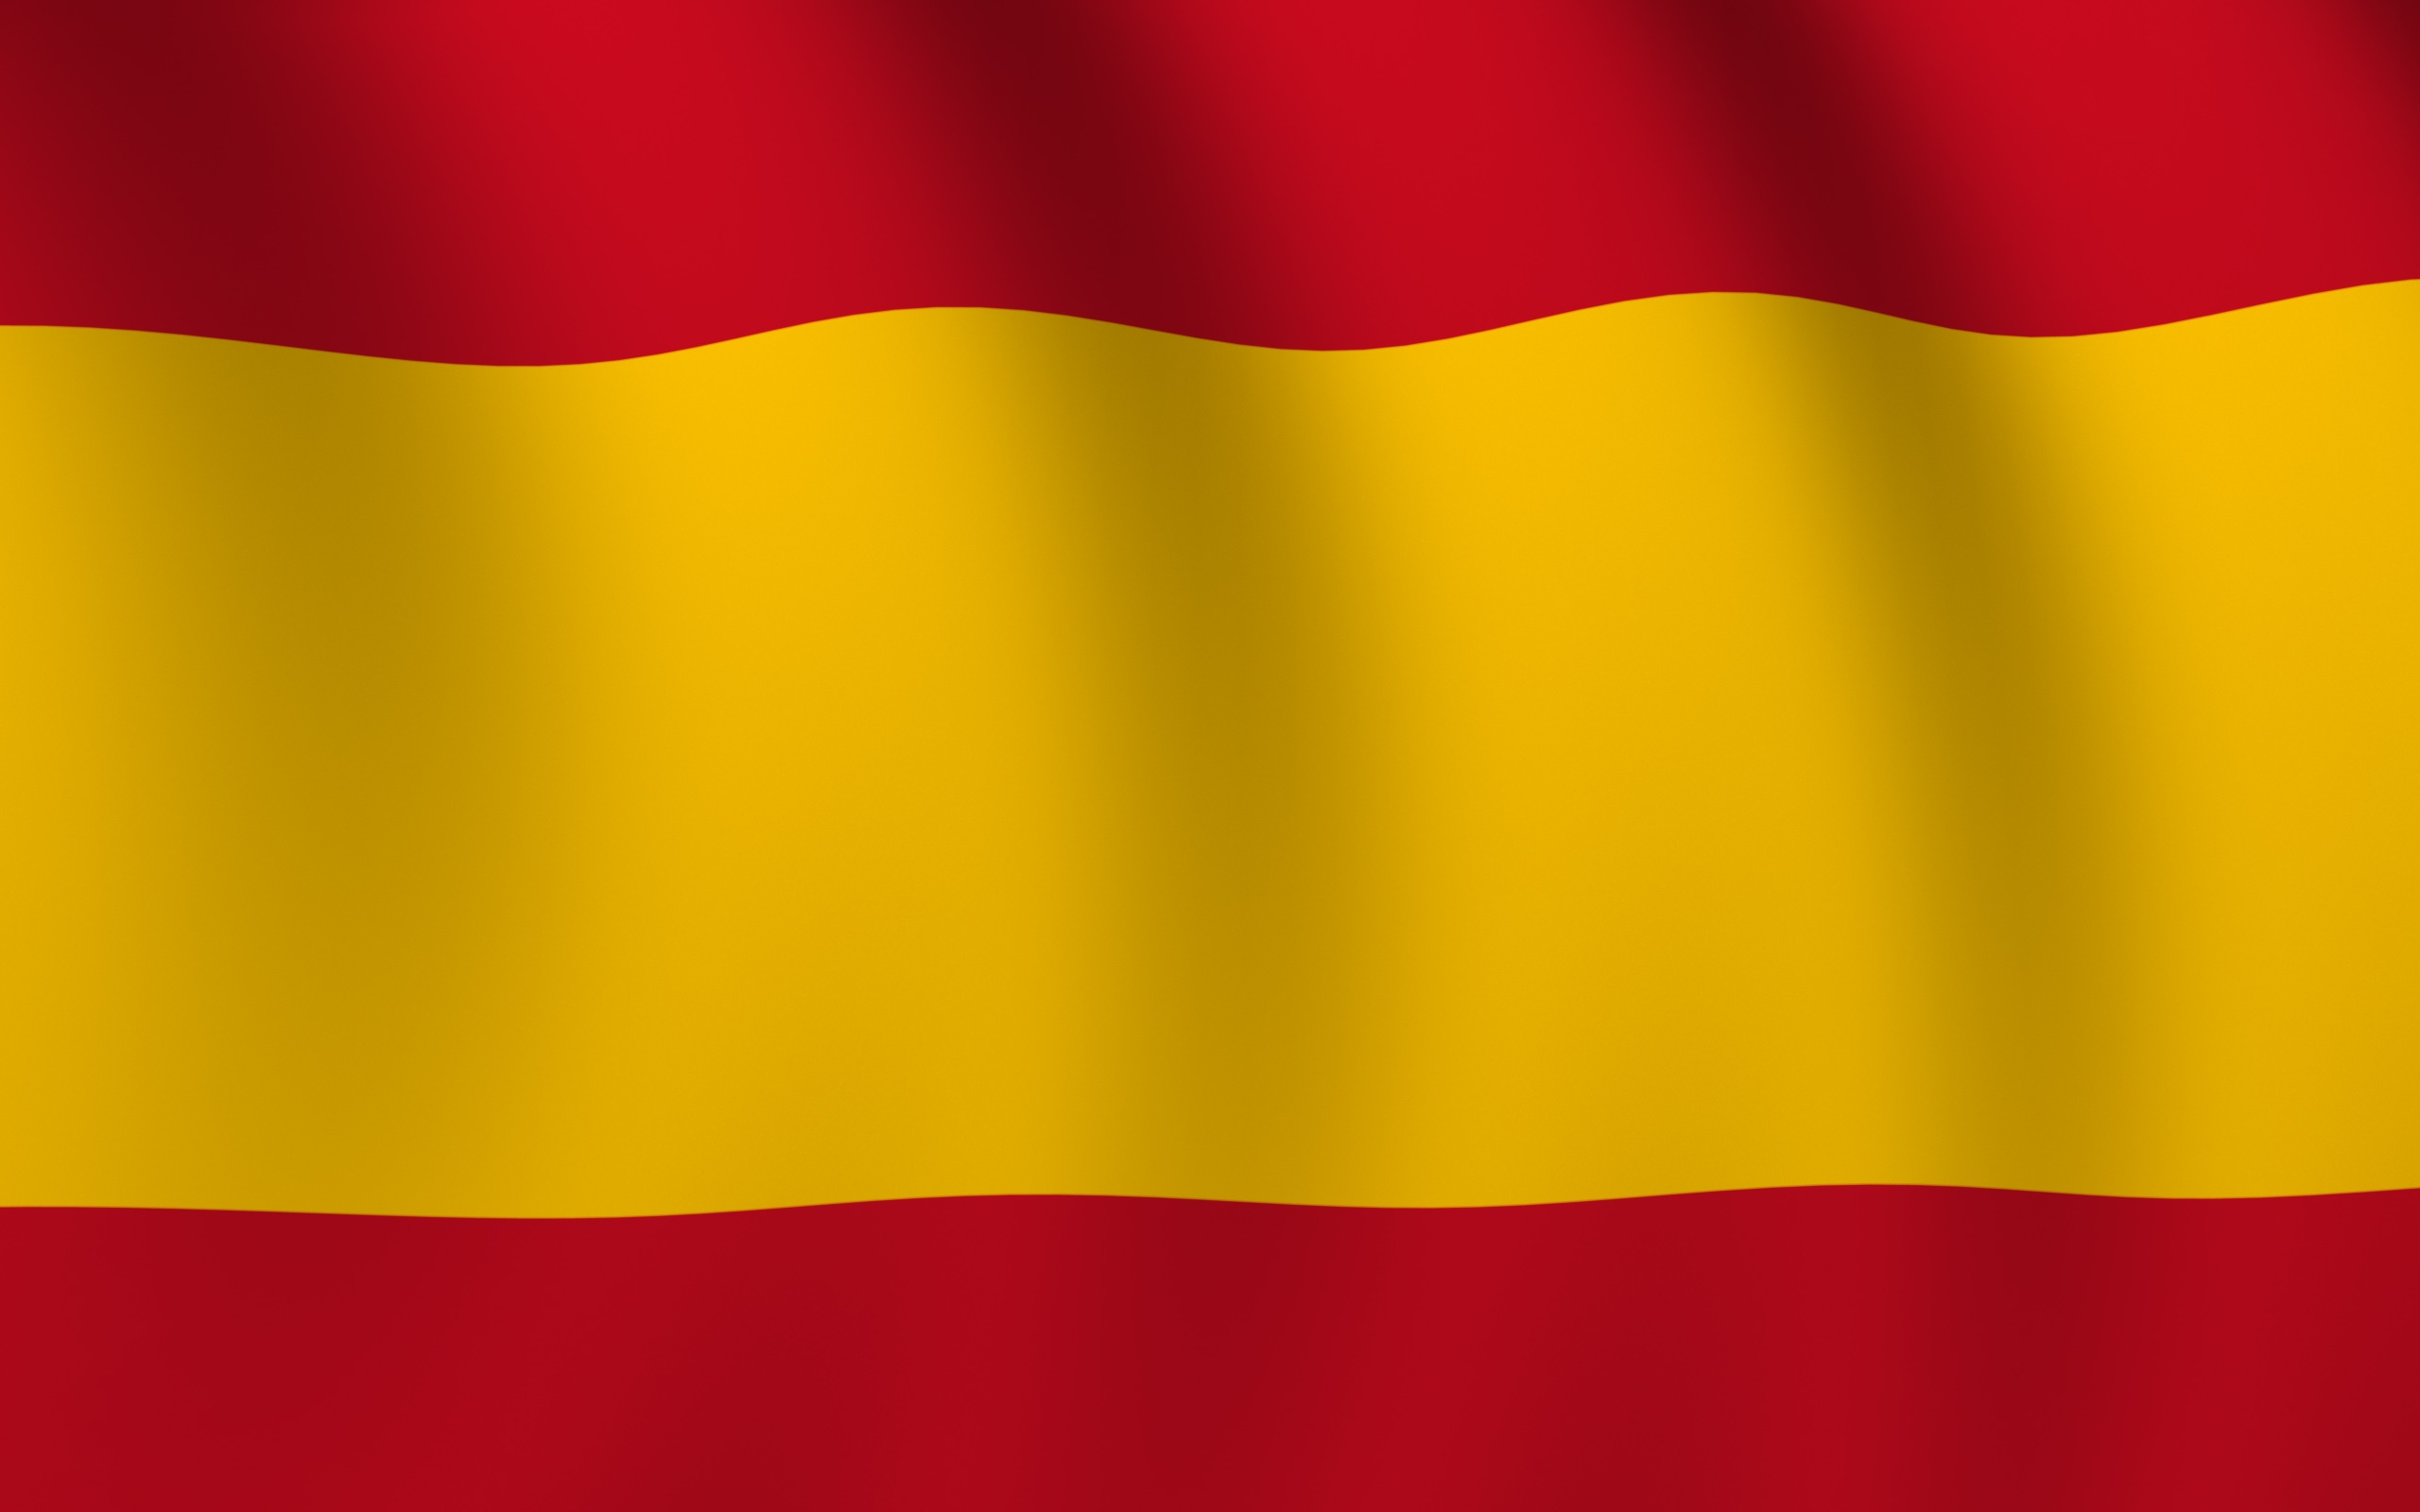 Spain Full Hd Wallpaper And Background Image: Flag Of Spain Full HD Wallpaper And Background Image